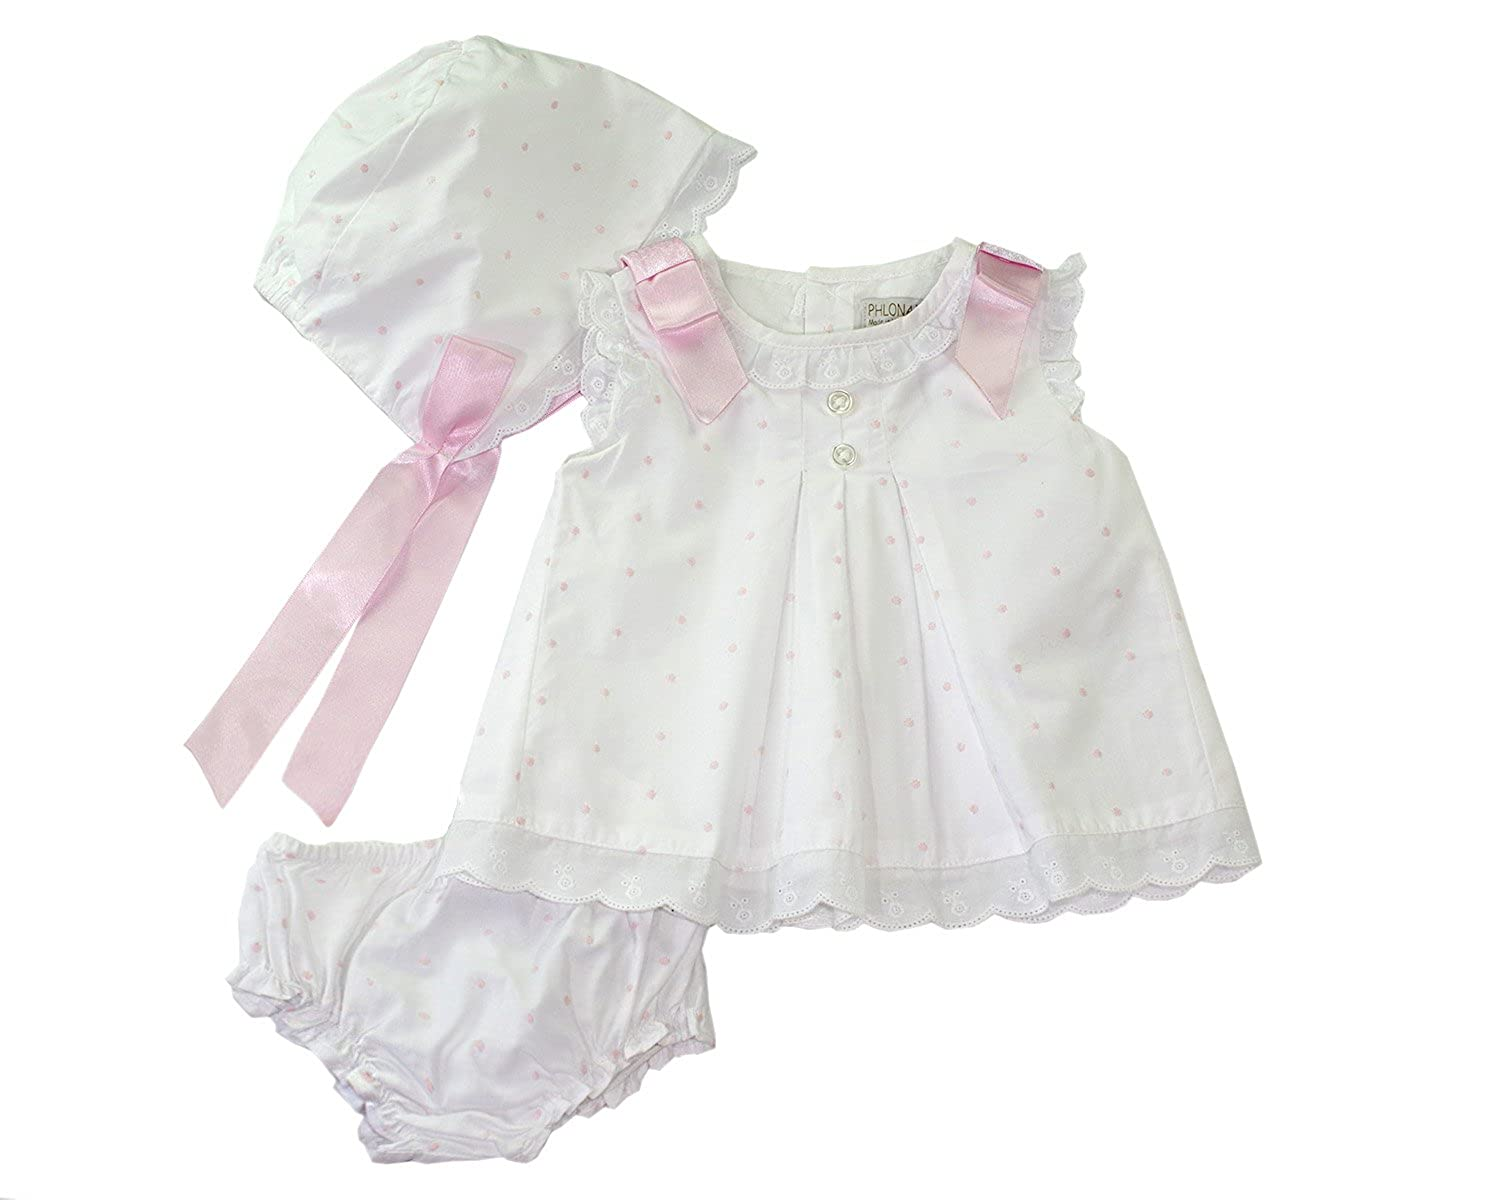 Baby Girls Clothes Outfit Set